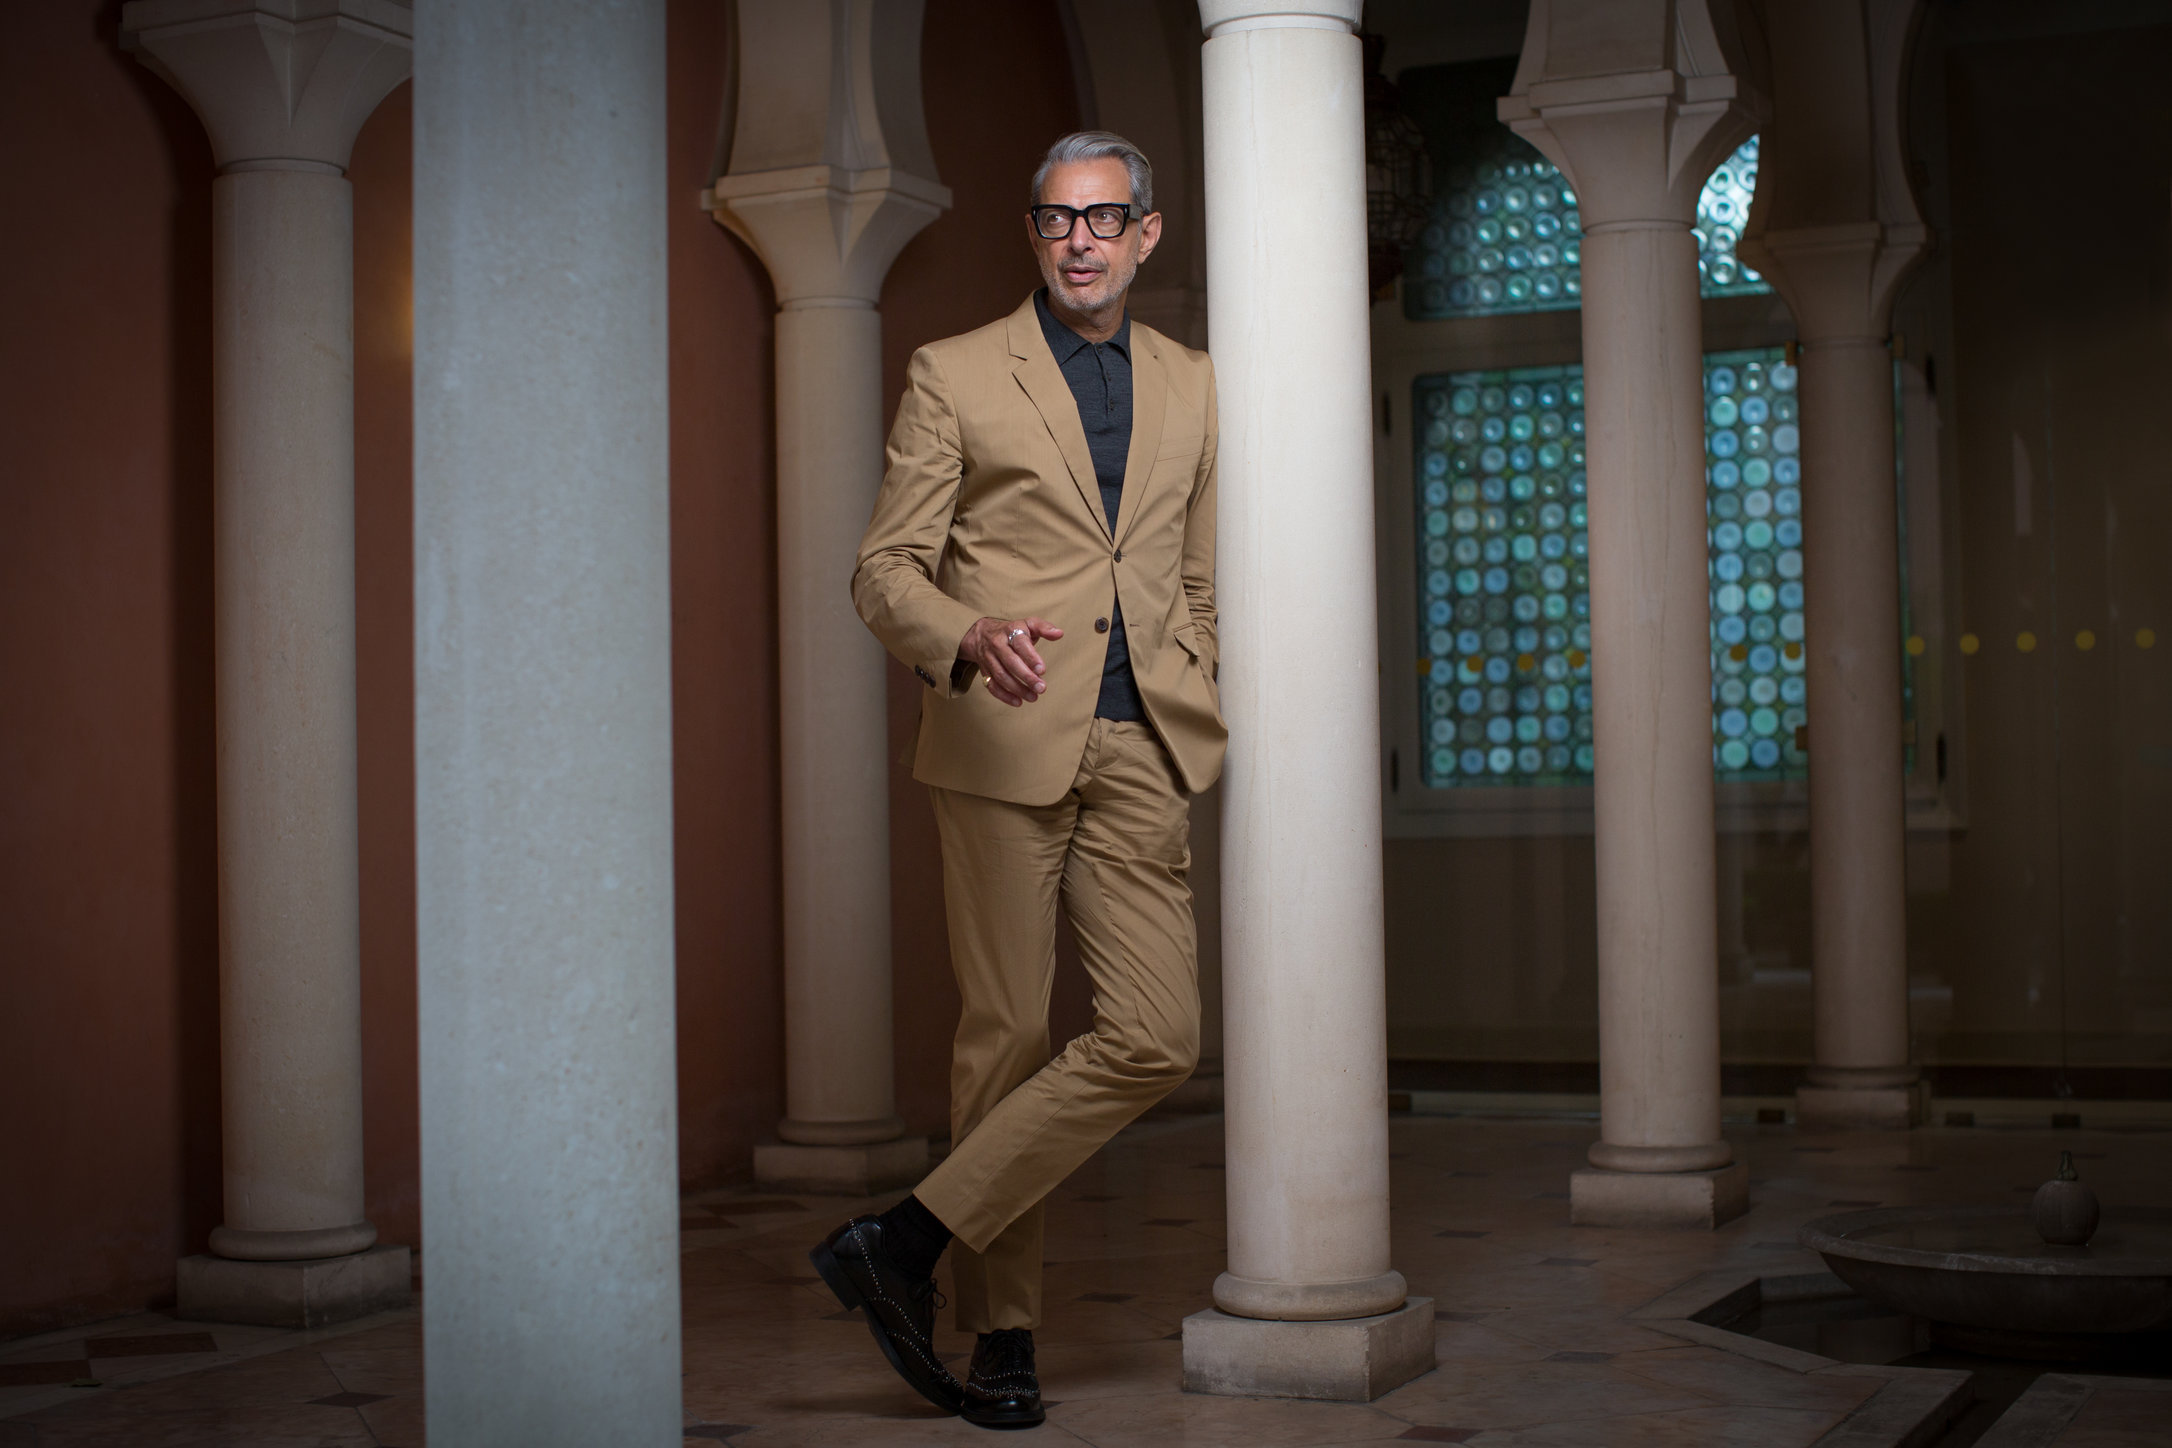 jeff goldblum, actor